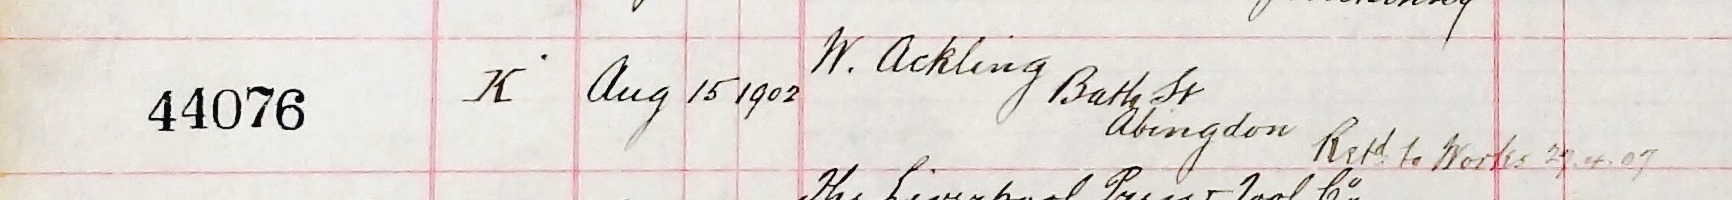 This entry in the ledger of the engine-building firm of Crossley Brothers Ltd